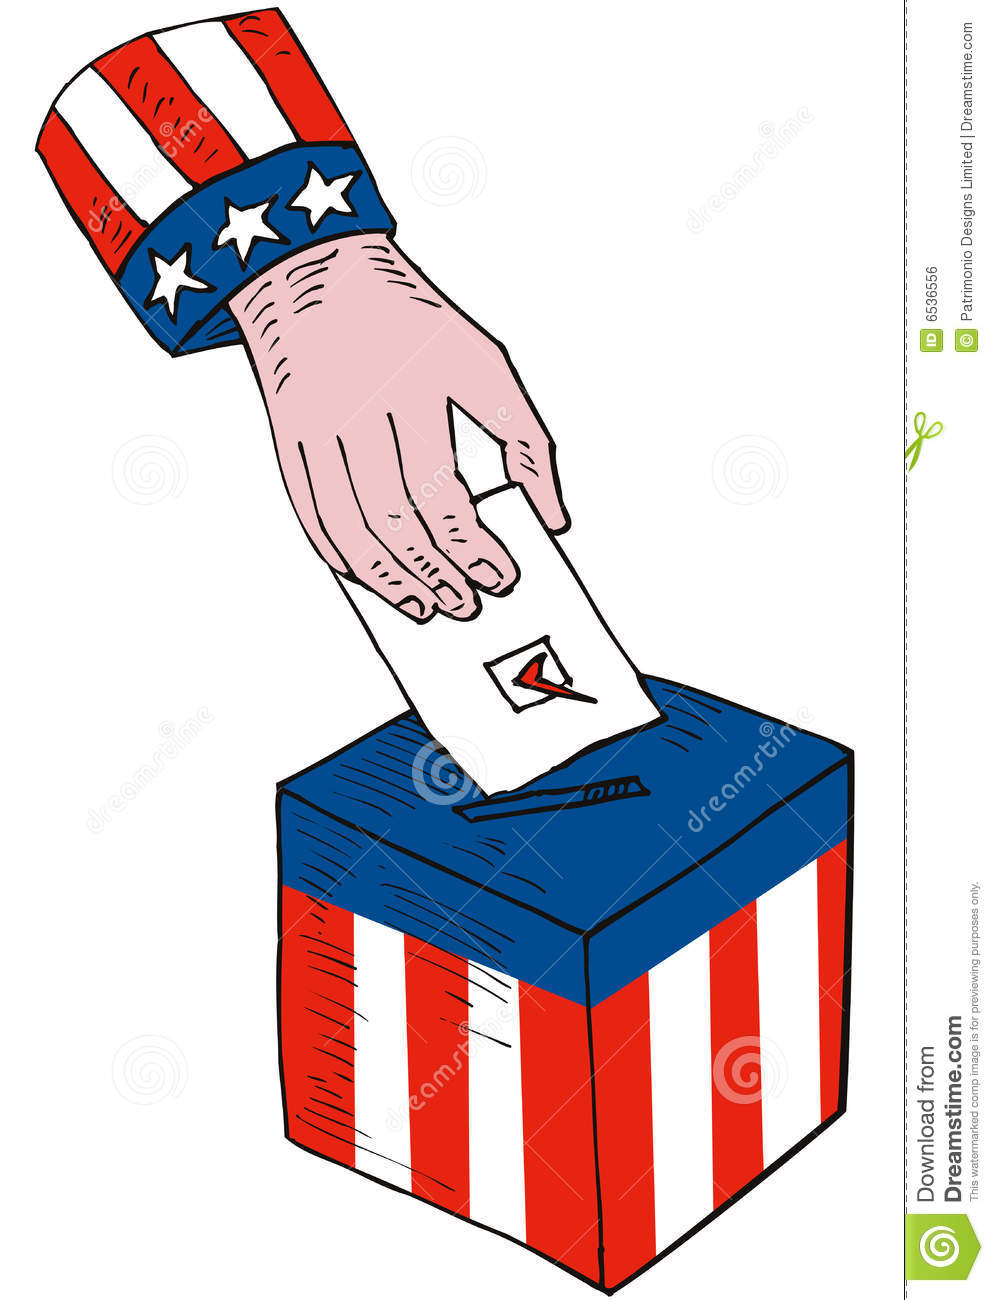 Voter's Hand And Ballot Box Royalty Free Stock Image ...